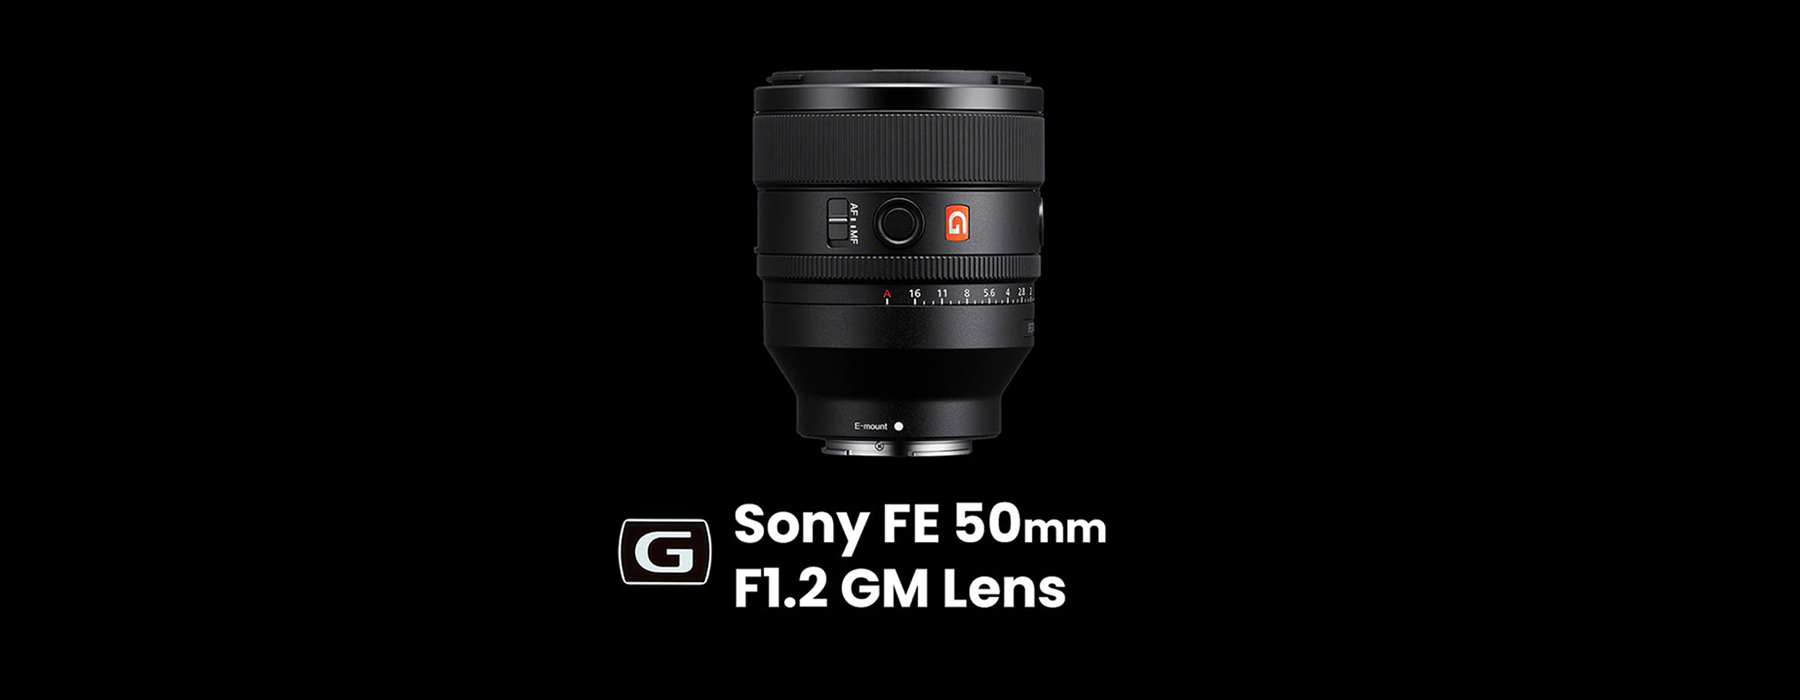 Comparison of the new 50mm 1.2 with other Sony 50mm Lenses